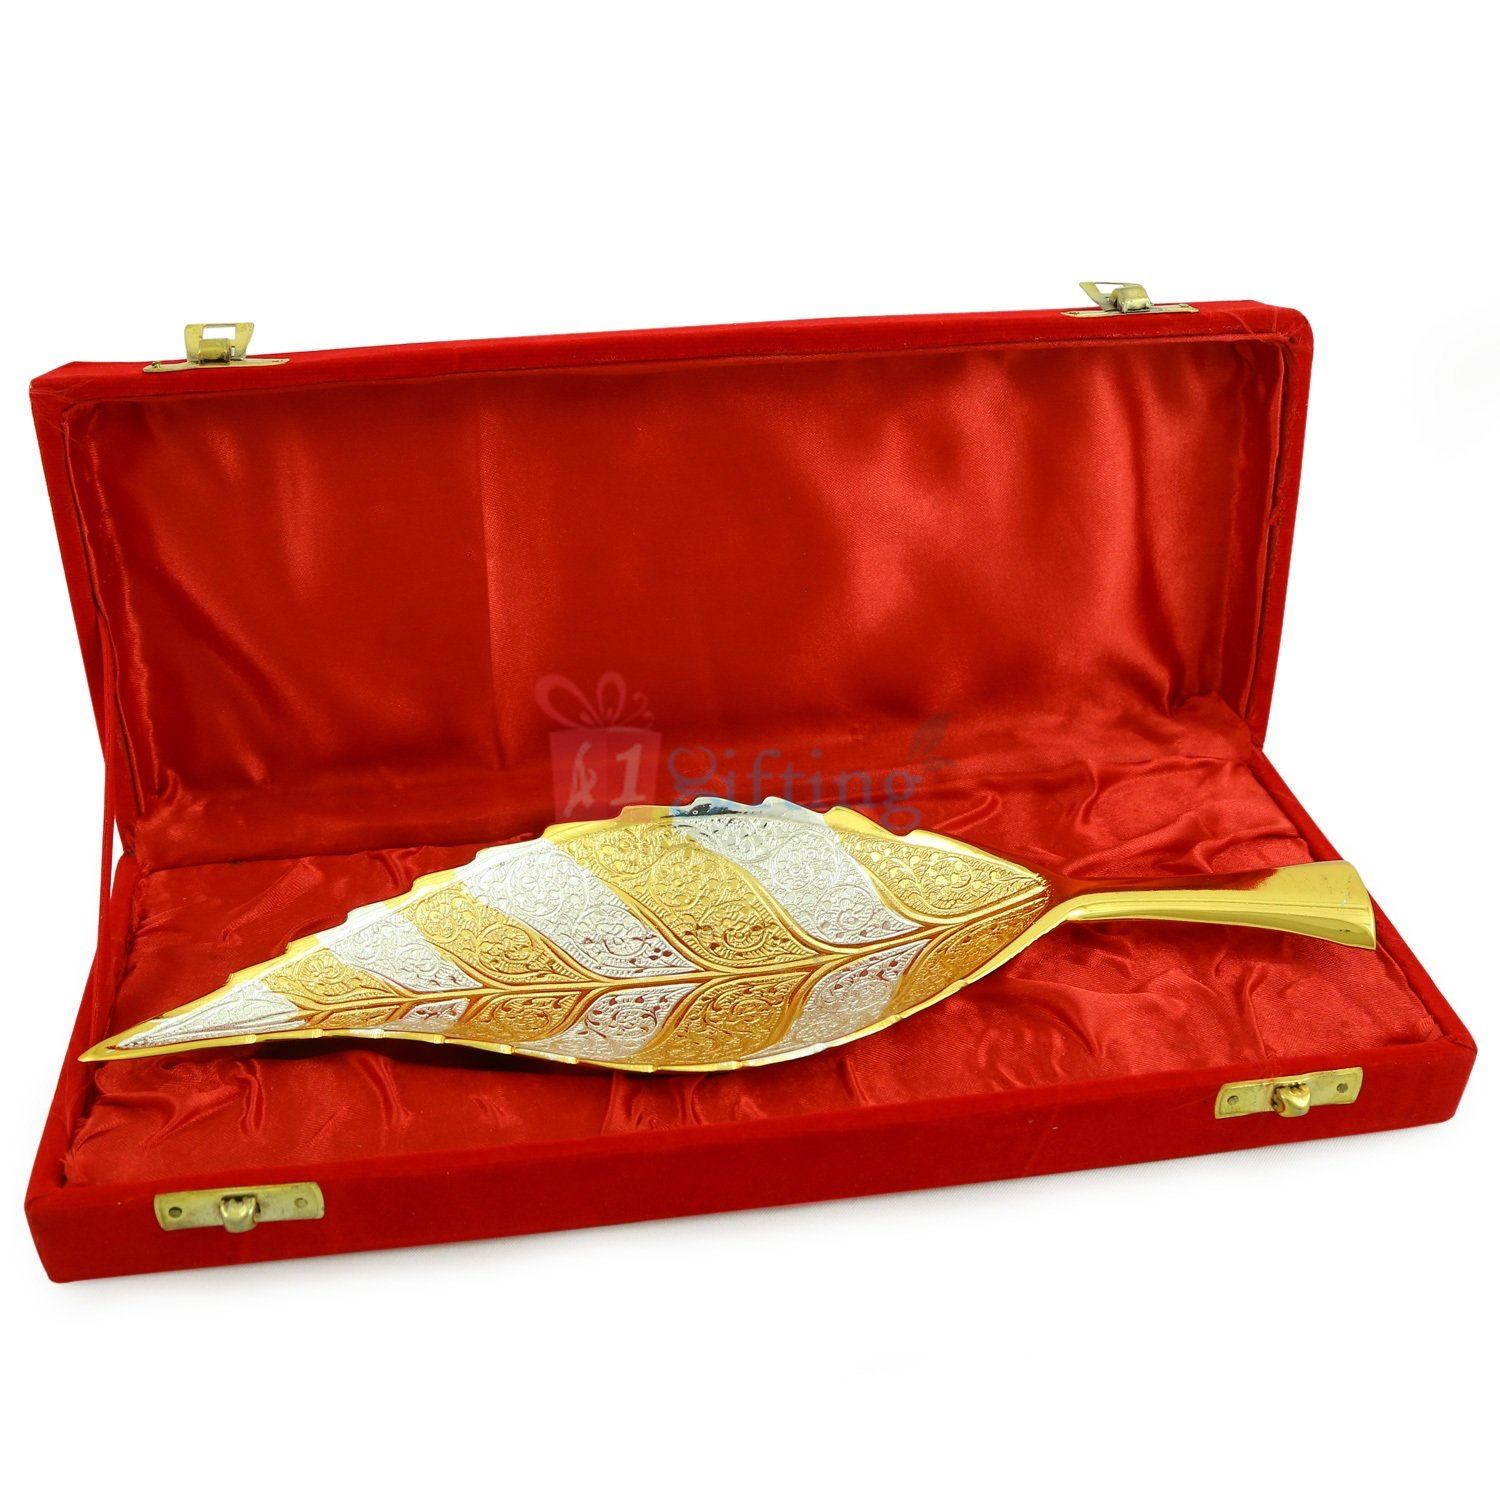 Brass Golden Silver Leaf for Gift to Royal Serving